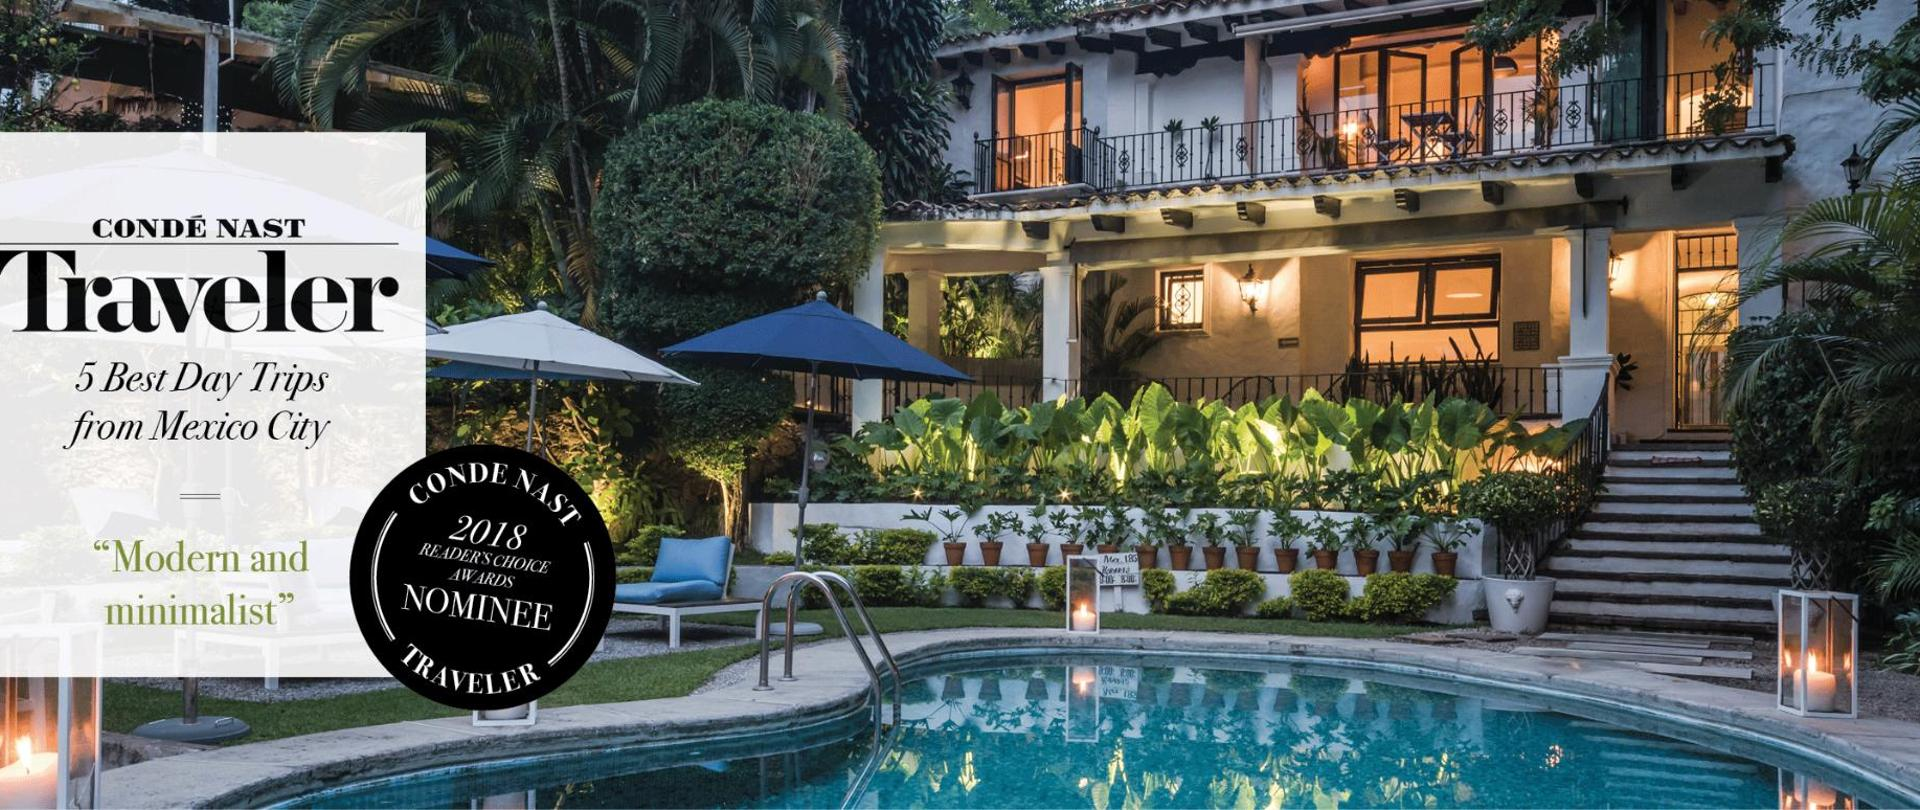 Las Casas b+b, the best bed and breakfast boutique Hotel in Cuernavaca Mexico